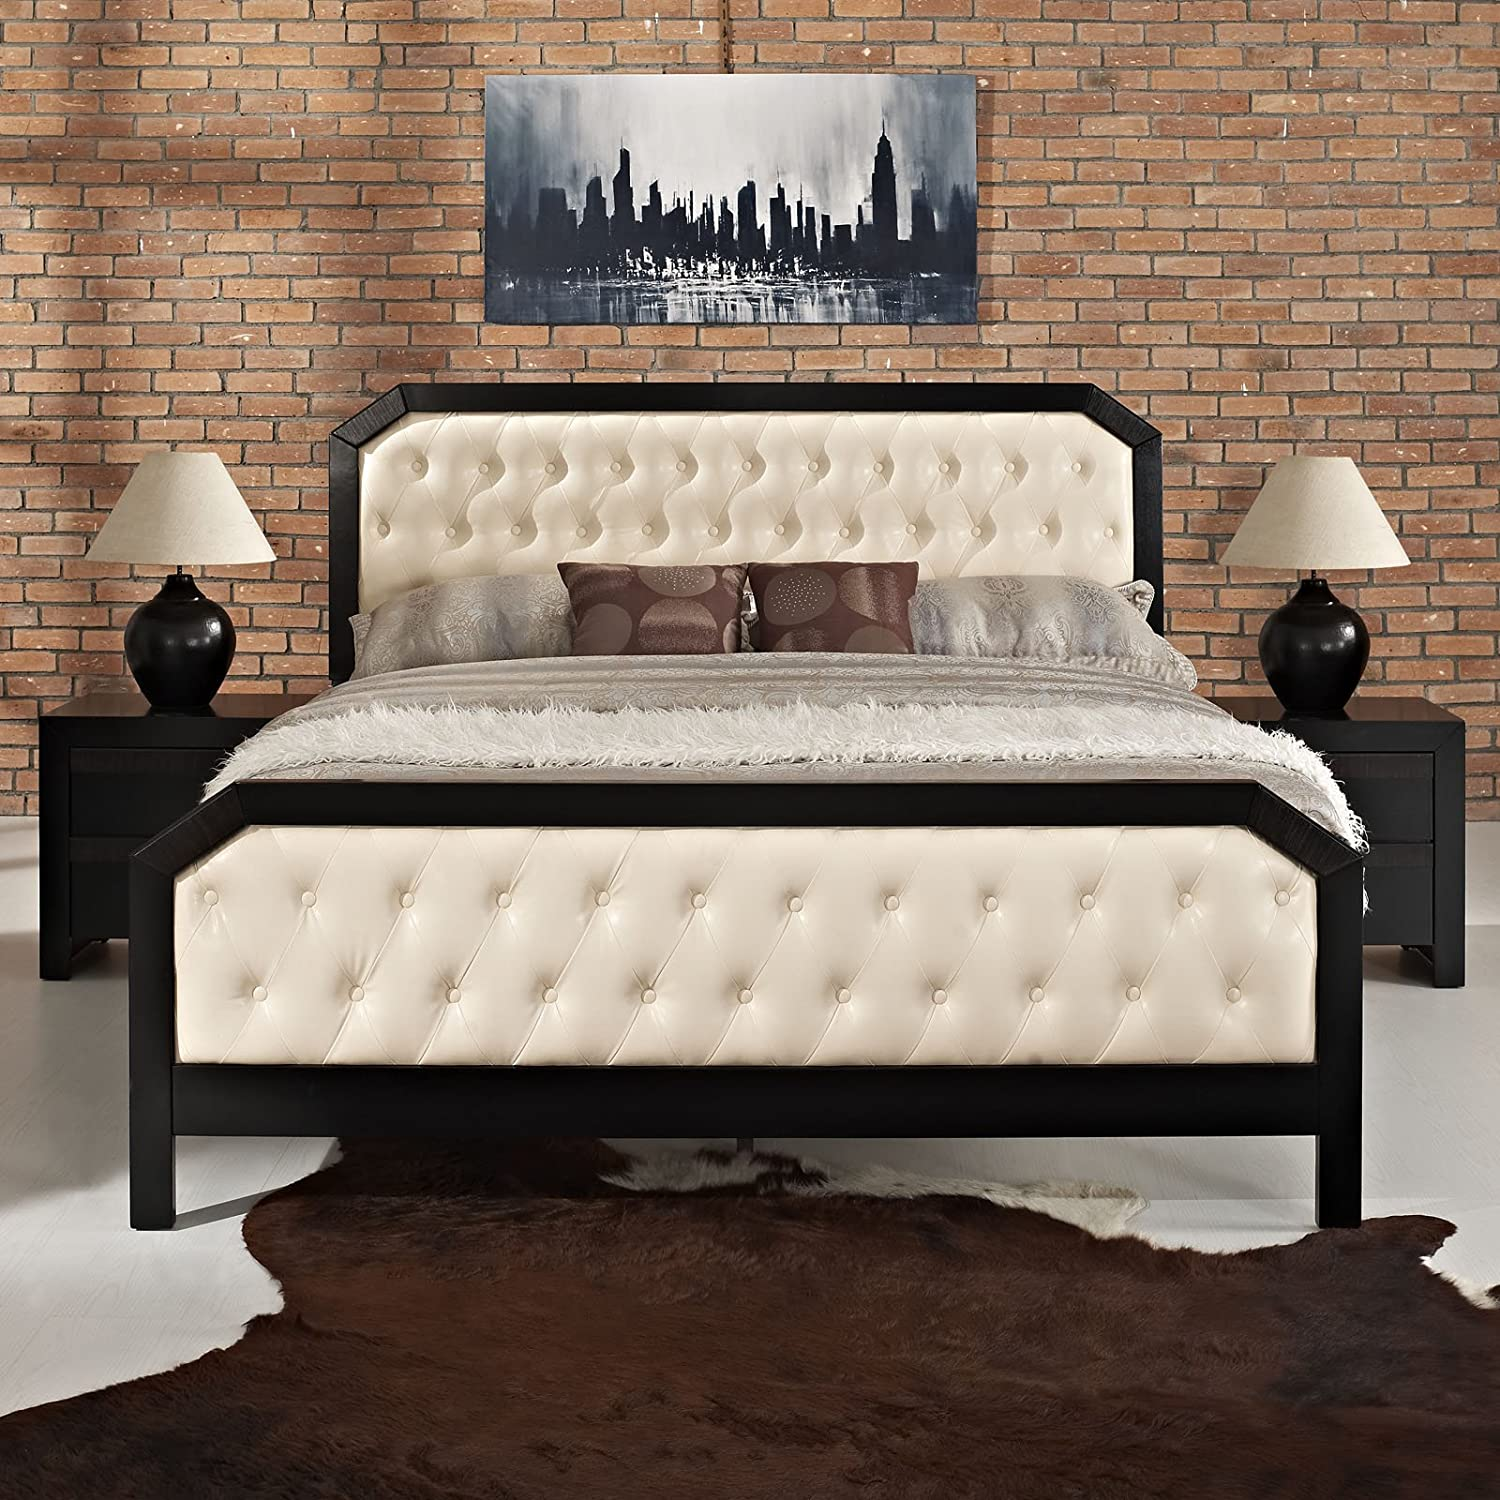 Modway Tommy 3-Piece Bedroom Set with Double Nightstands, King